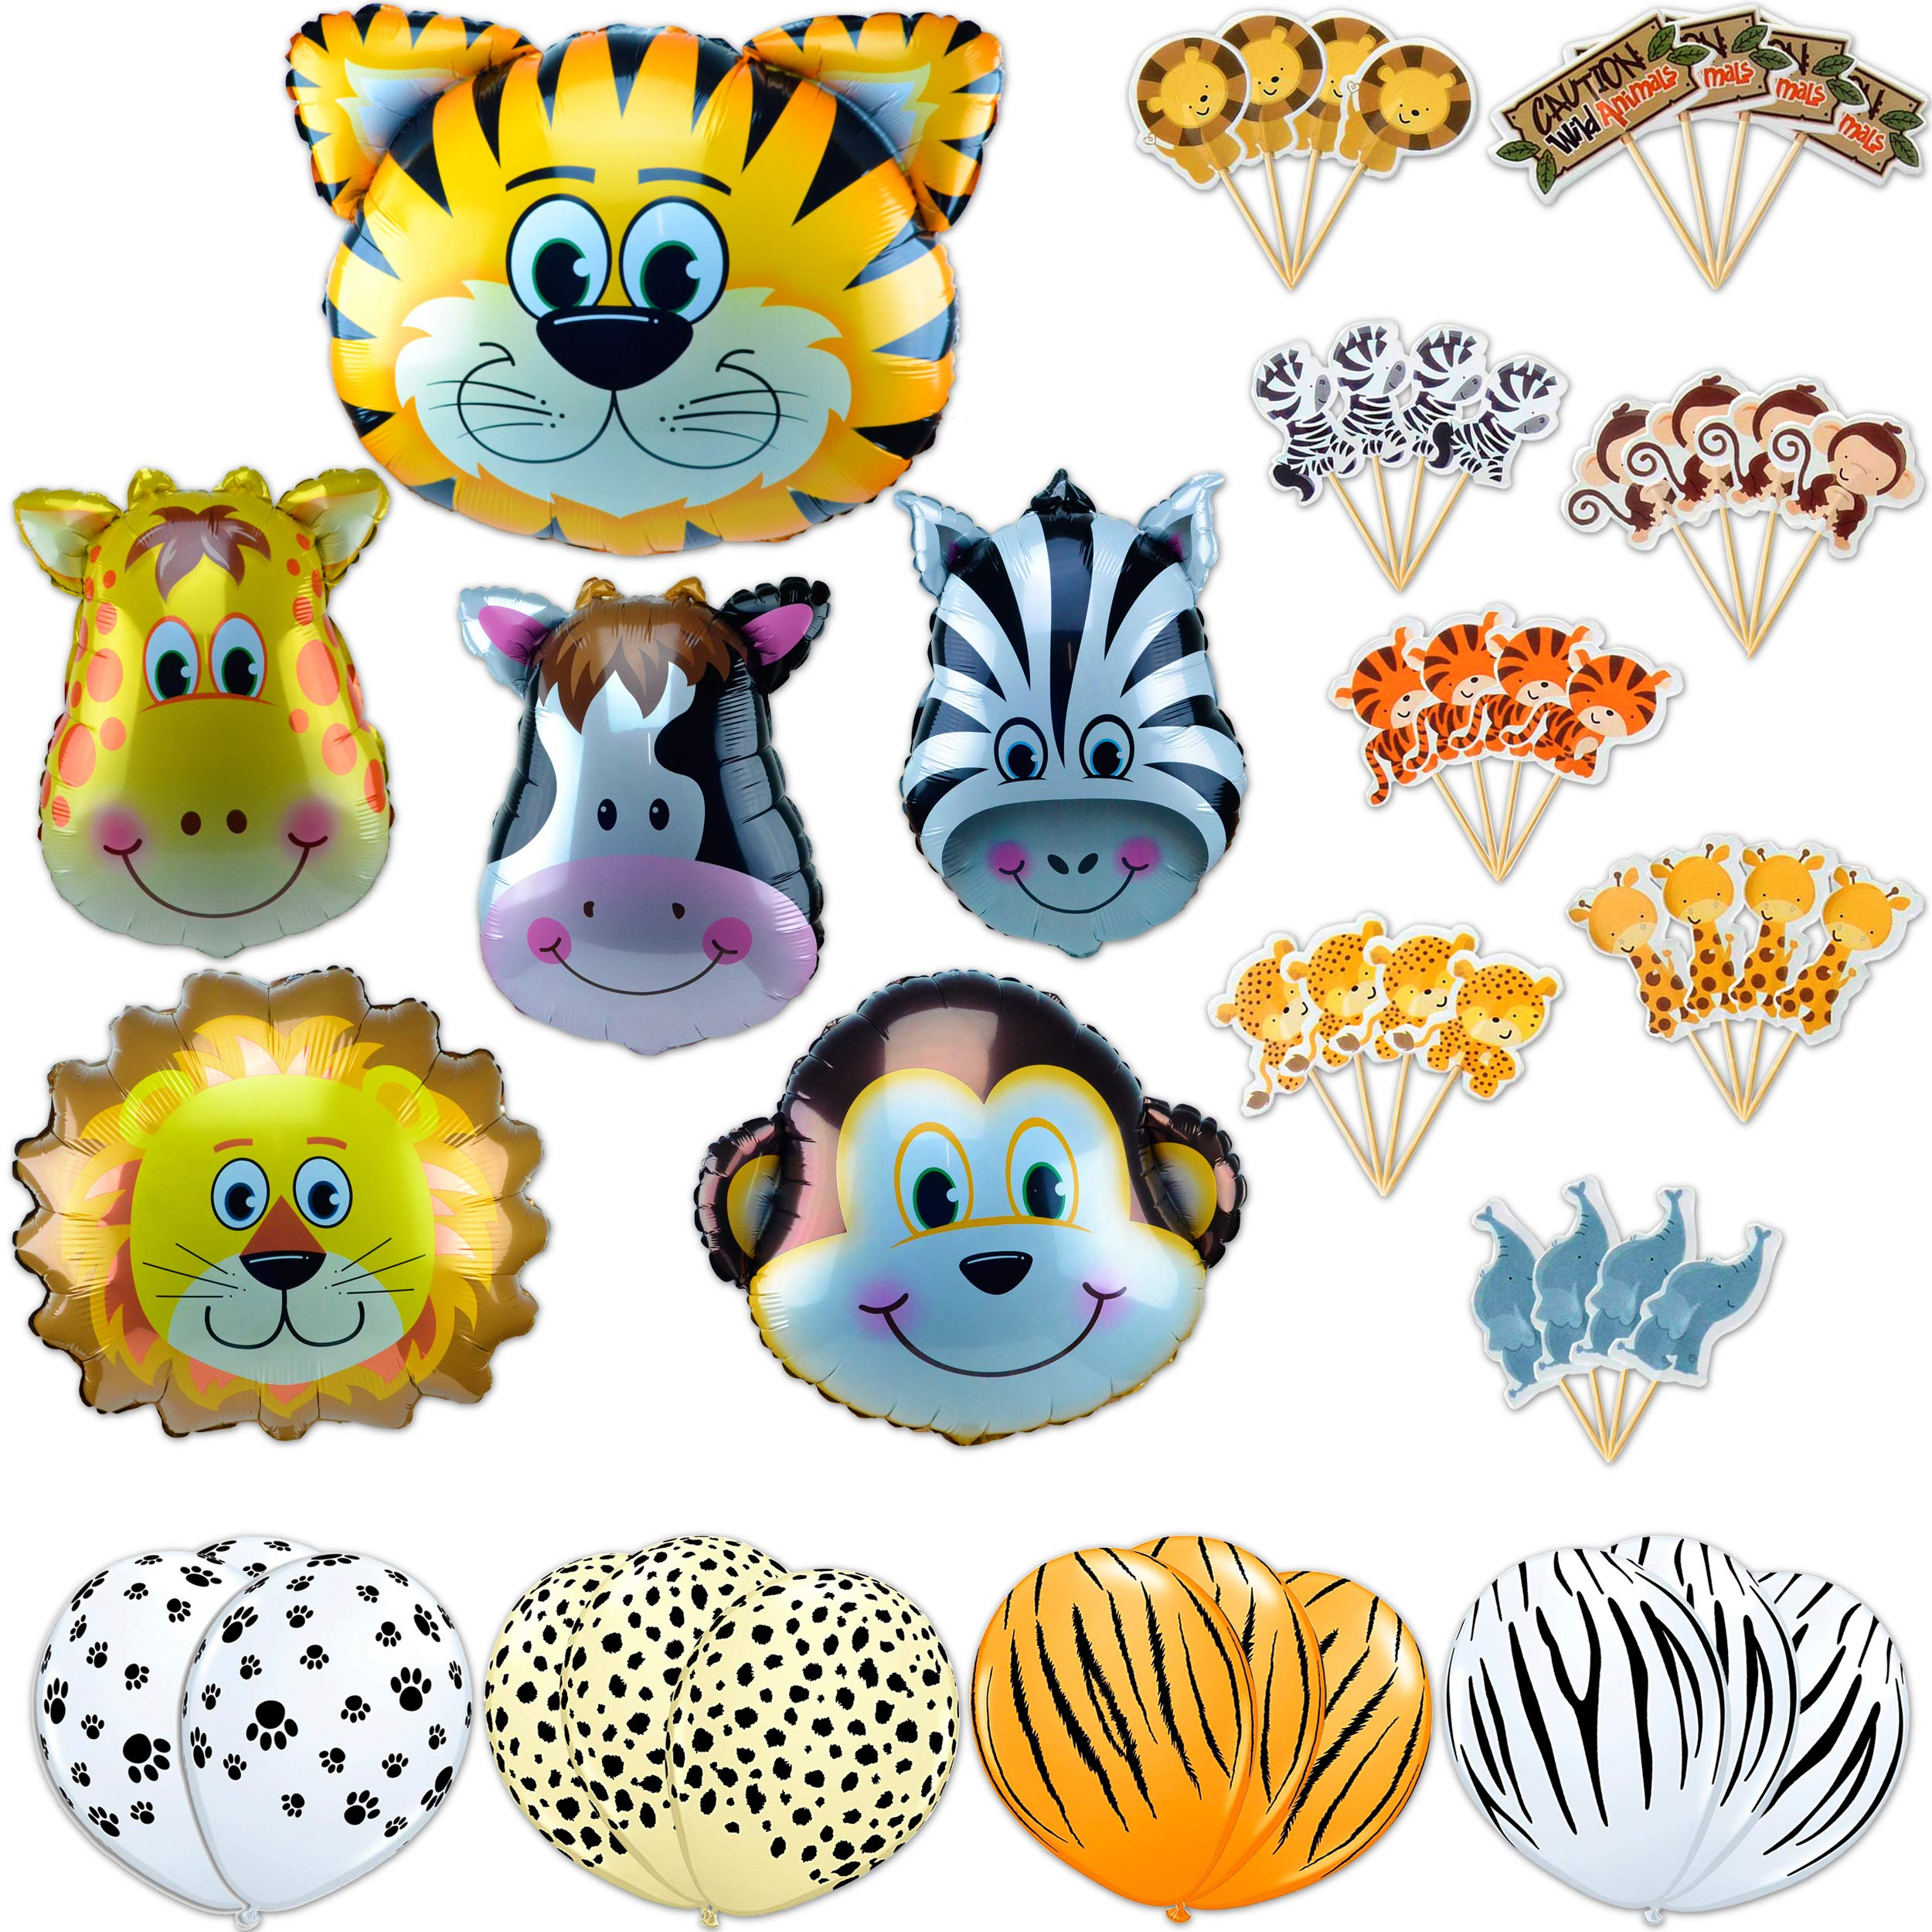 Jungle Animals Foil Latex Balloons Birthday Party Decorations Lion Tiger Monkey Zebra Giraffe Cow SAFARI ZOO Cupcake Toppers Pack of 34